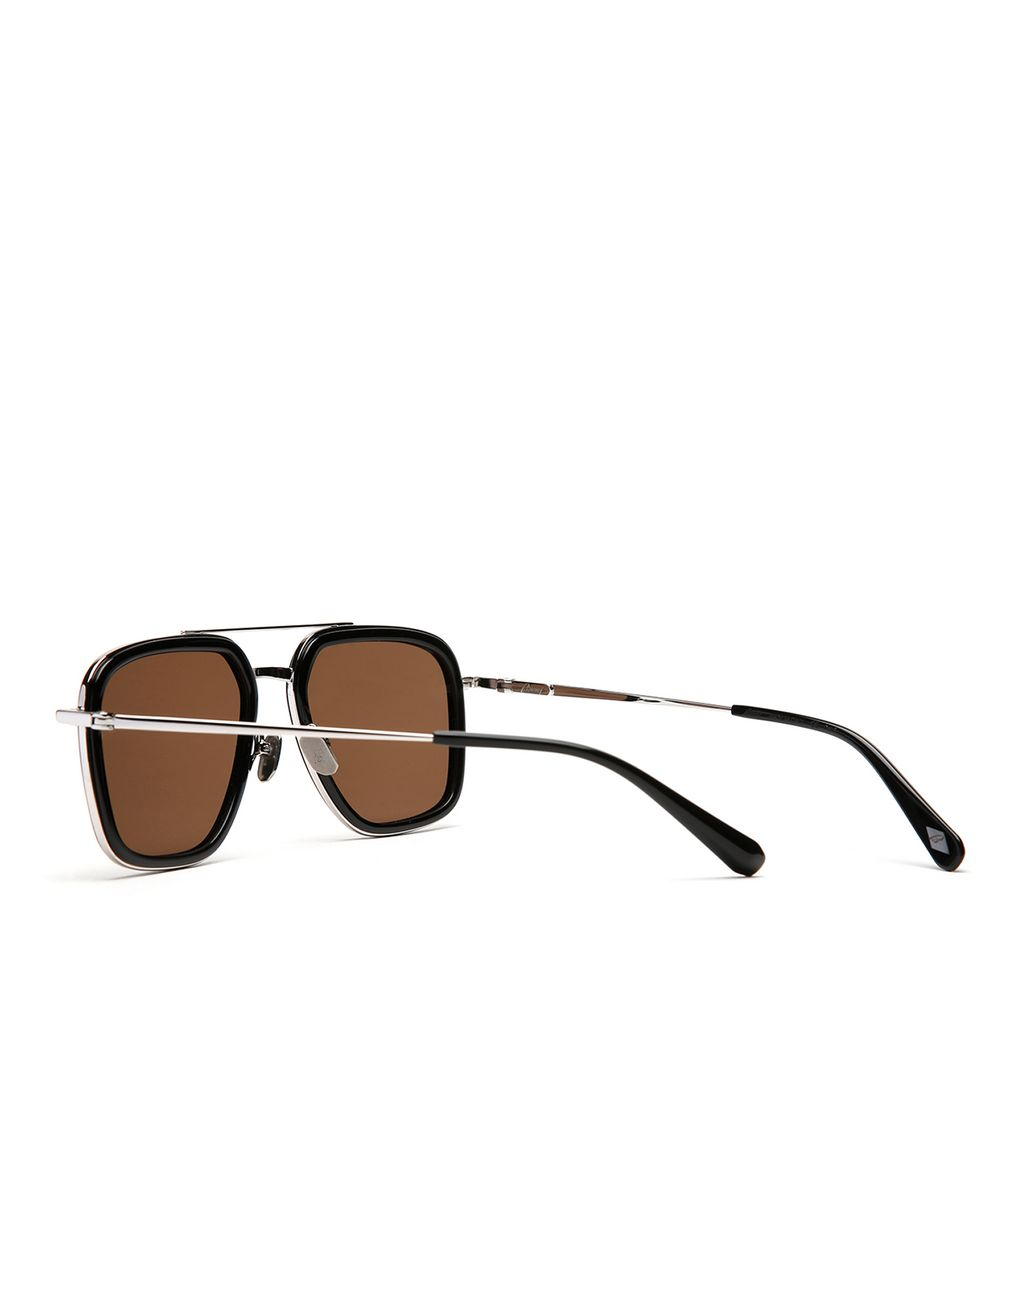 BRIONI Black Geometric Shape Sunglasses with Brown Lenses  Sunglasses [*** pickupInStoreShippingNotGuaranteed_info ***] d